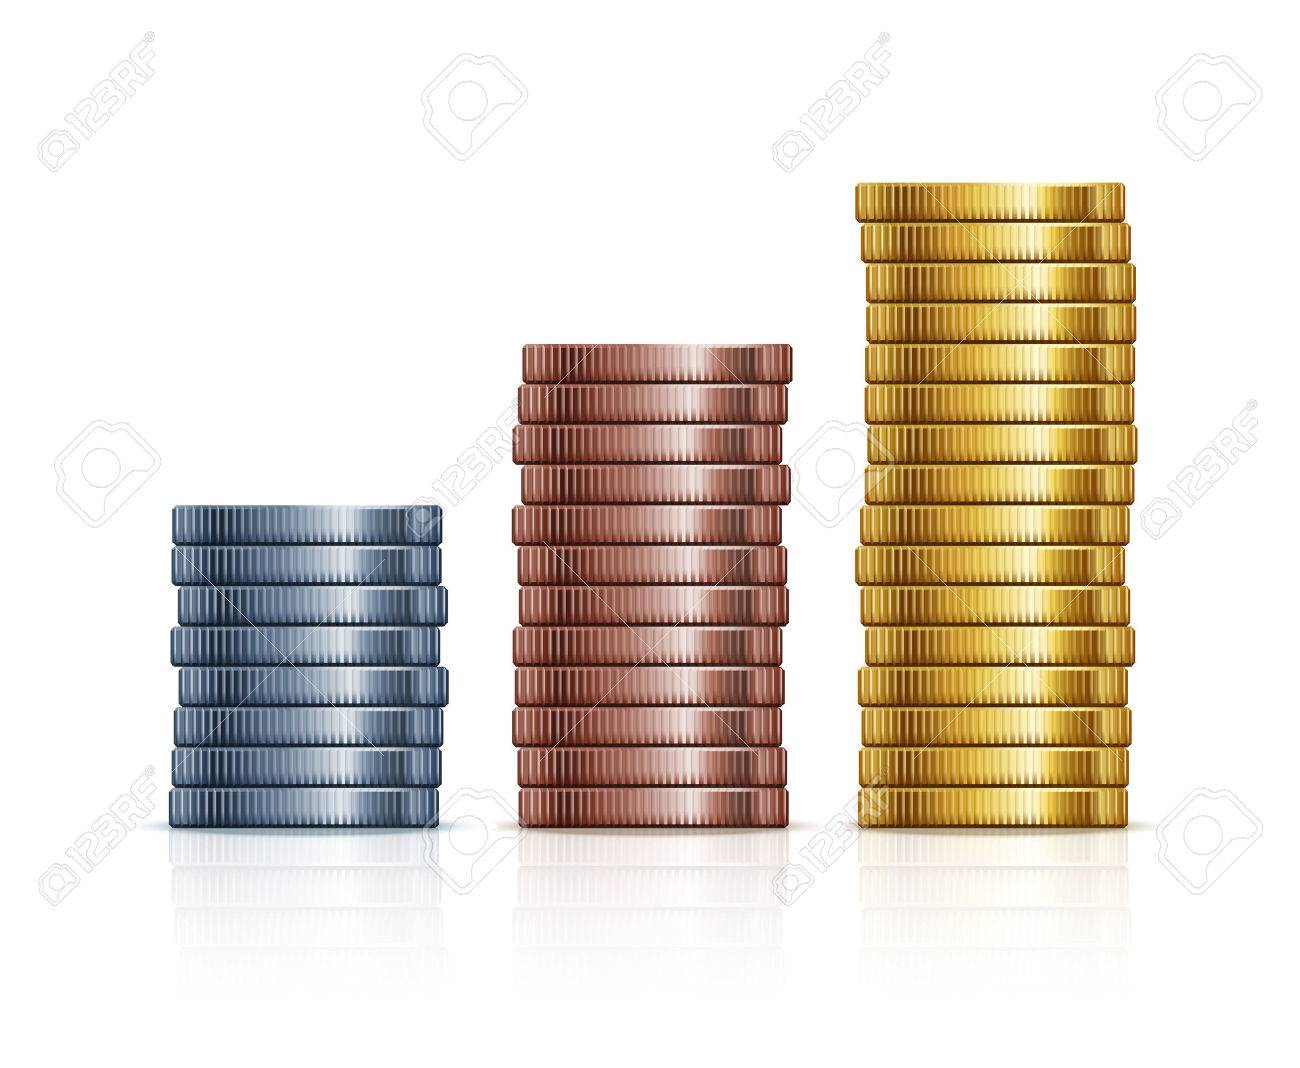 Gold And Copper : Stacks of coins gold silver and copper coins royalty free